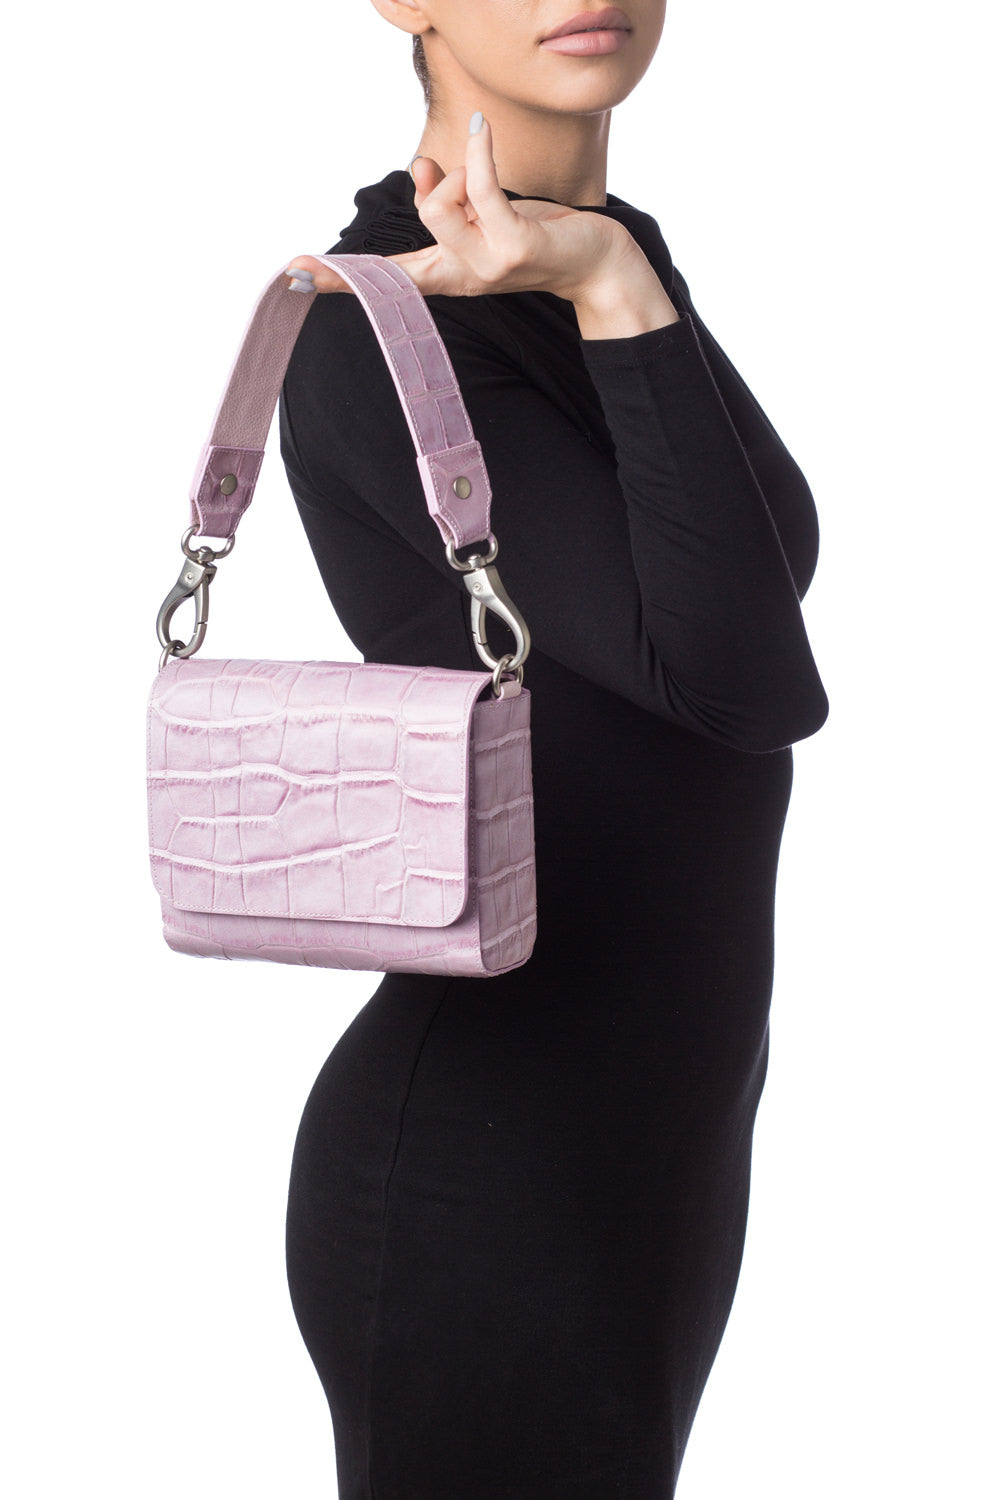 'Gema' Small Shoulder Bag in Sweet Lilac, Croc-Emboss Leather | Mel Boteri | Model View